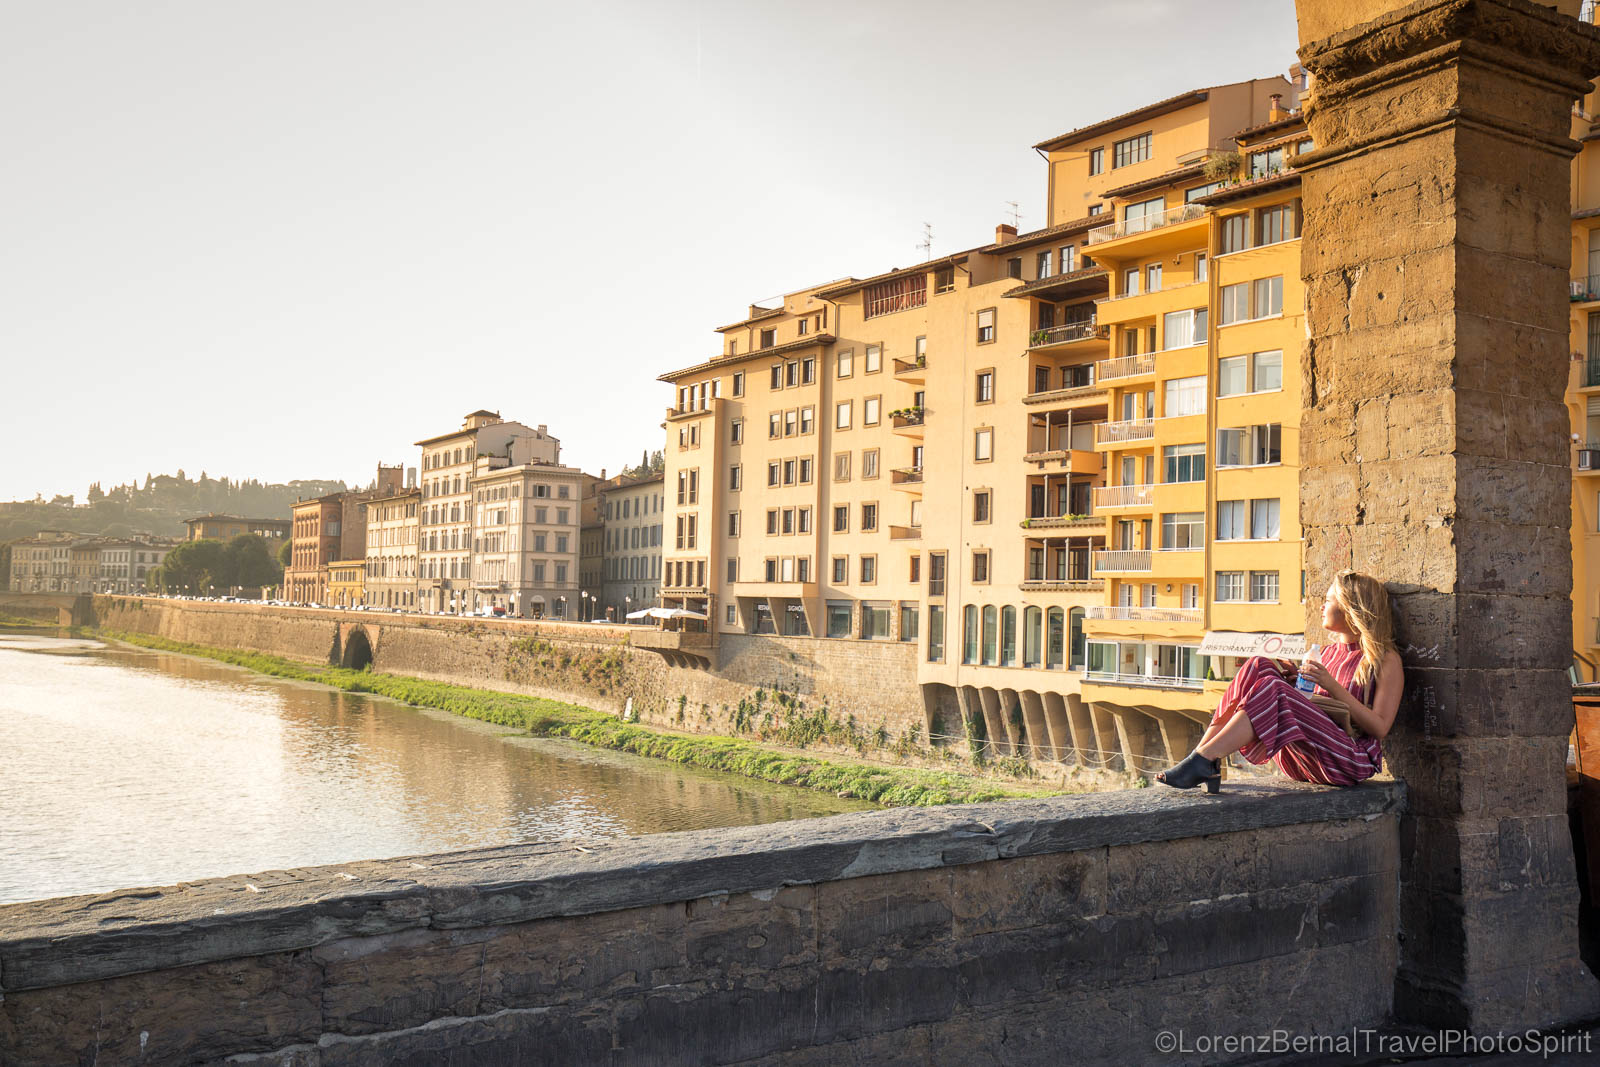 Tourist enjoying the first light of the morning from the Ponte Vecchio, Florence, Tuscany, Italy.